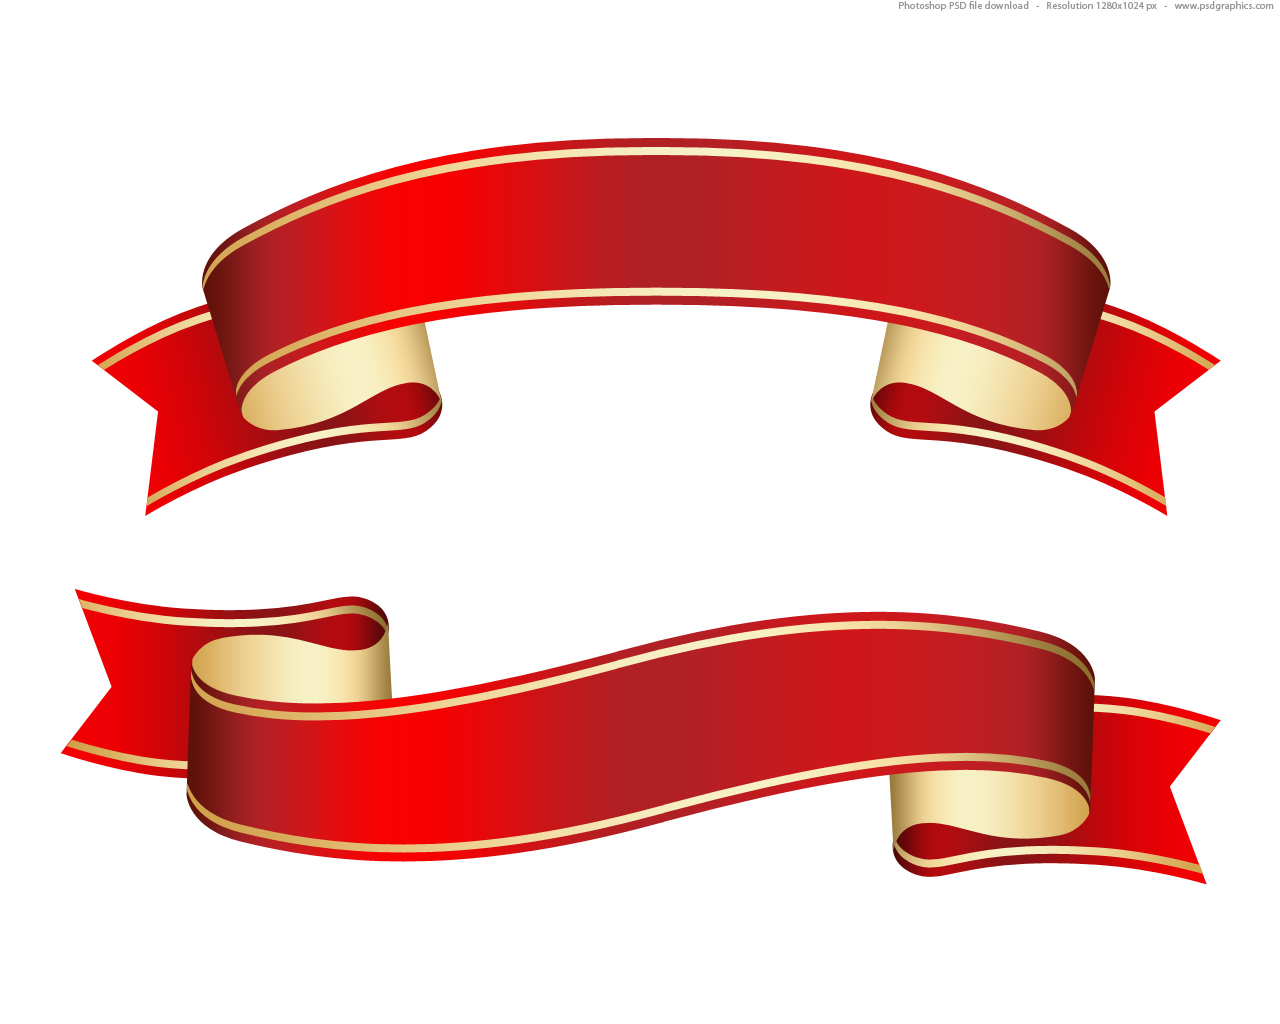 1280x1024 Curled Red Ribbon (Banner), Psd Template Psdgraphics